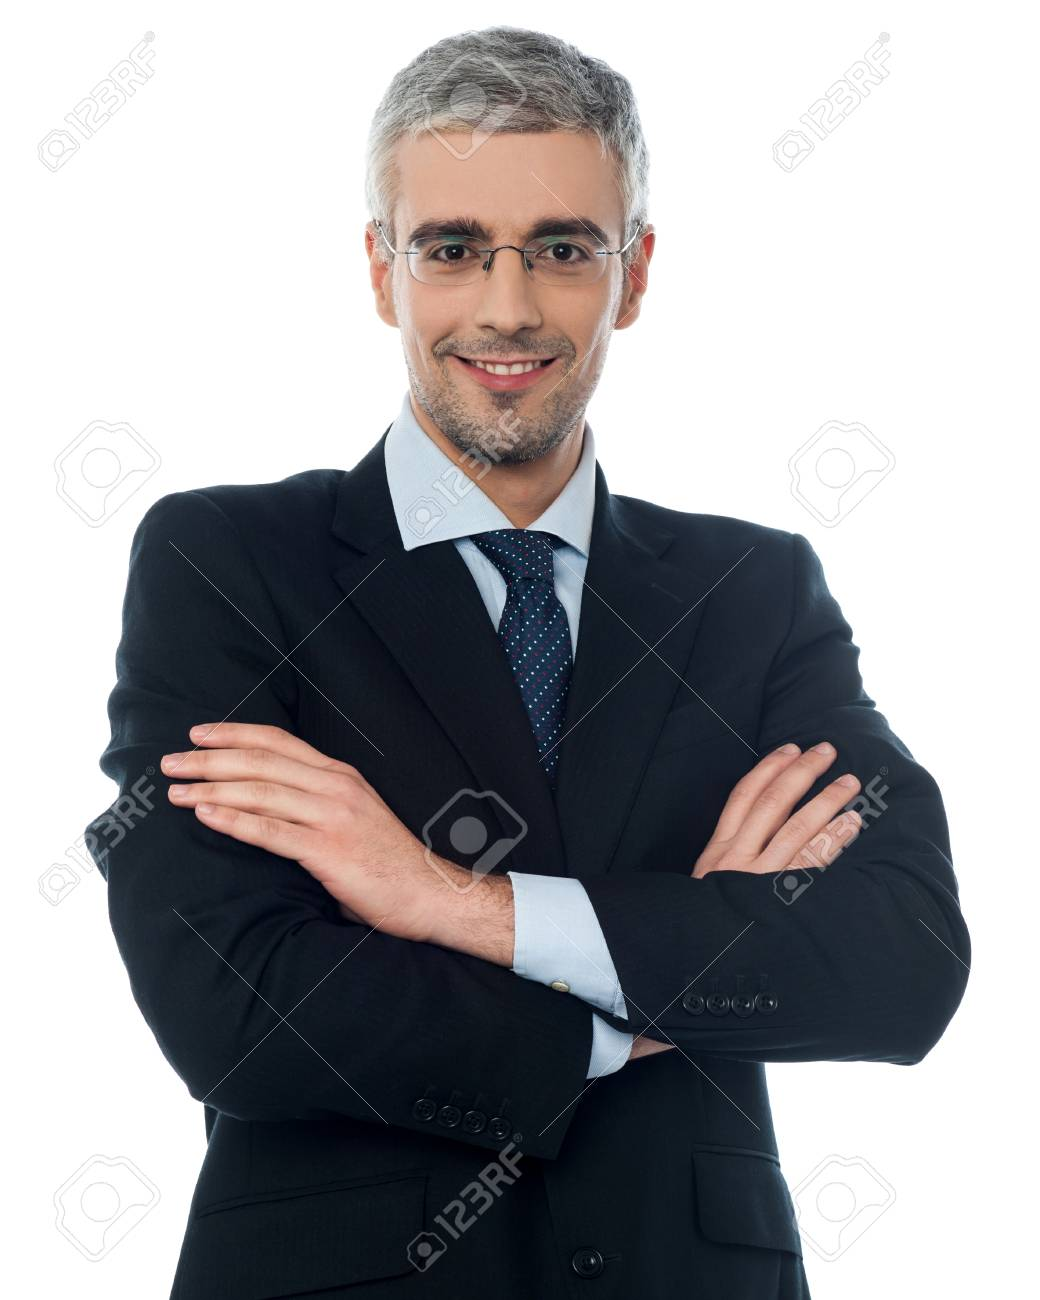 Friendly Businessman In Suit With Crossed Arms